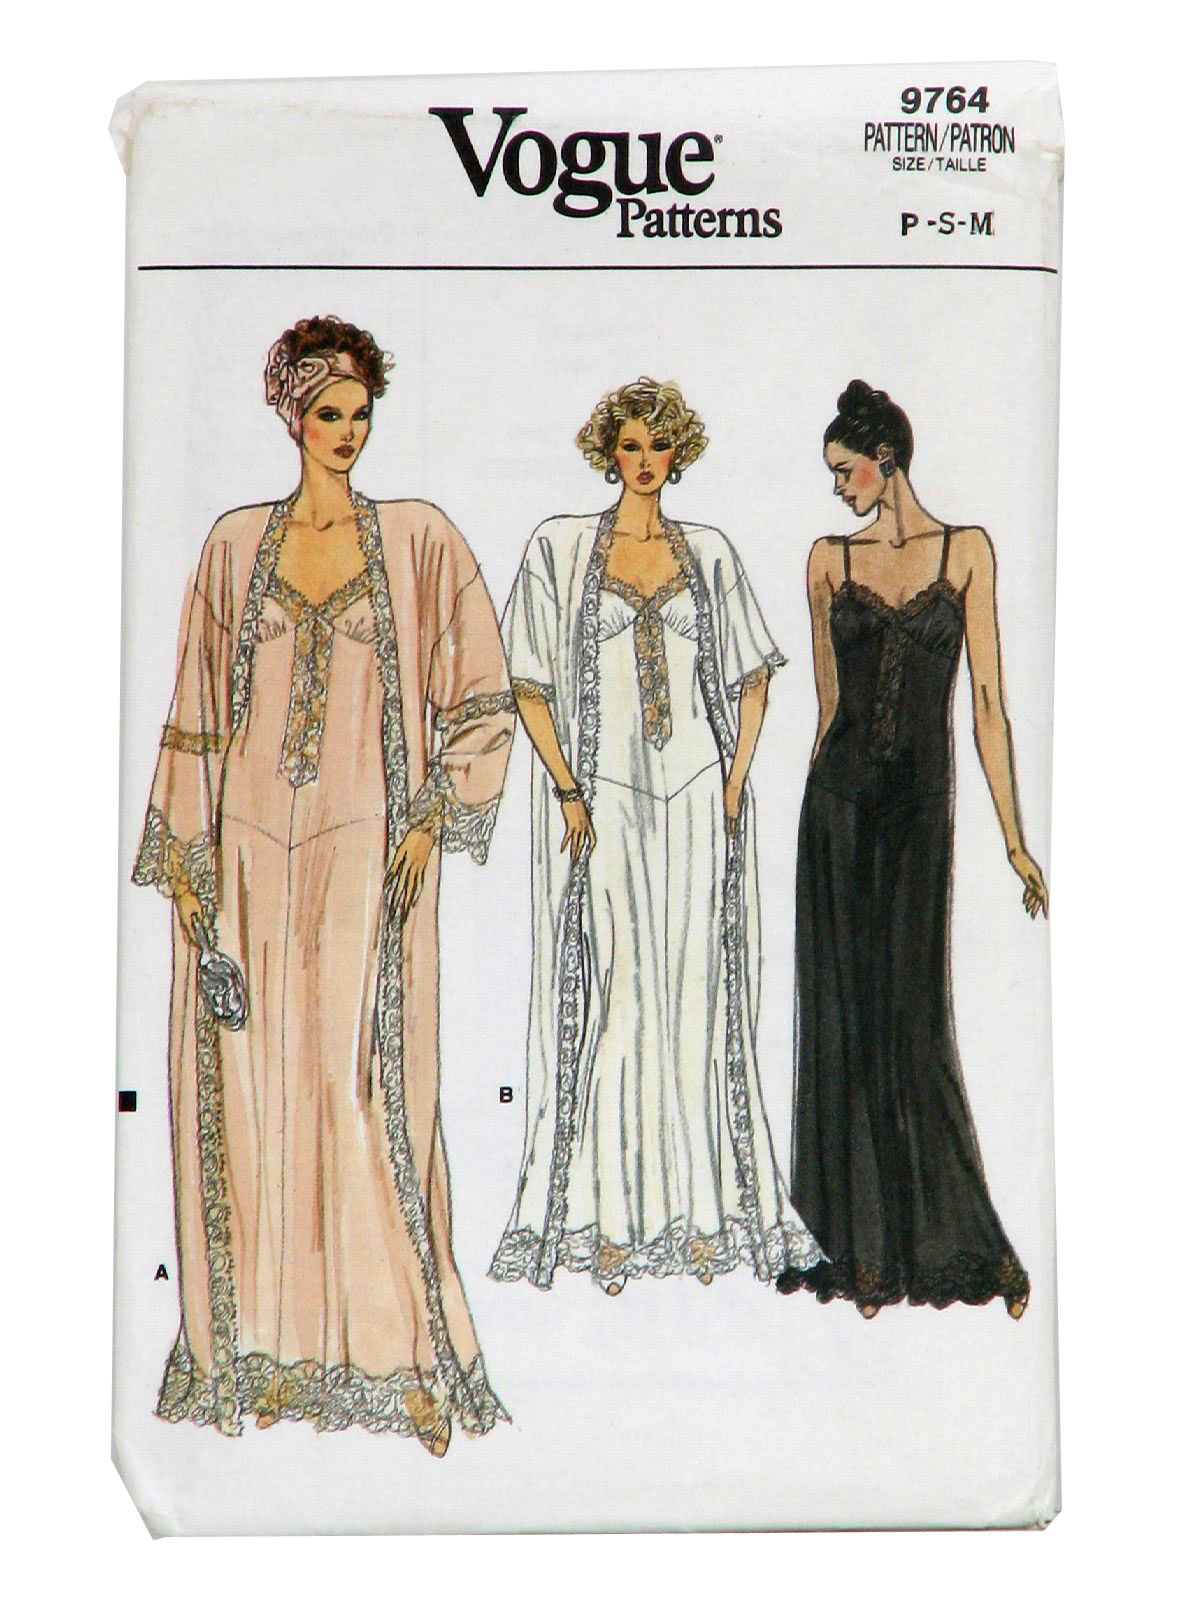 Sewing patterns nightgowns choice image craft decoration ideas 1980s sewing pattern vogue pattern no 9764 1986 vogue 9764 womens sewing pattern for misses robe jeuxipadfo Gallery